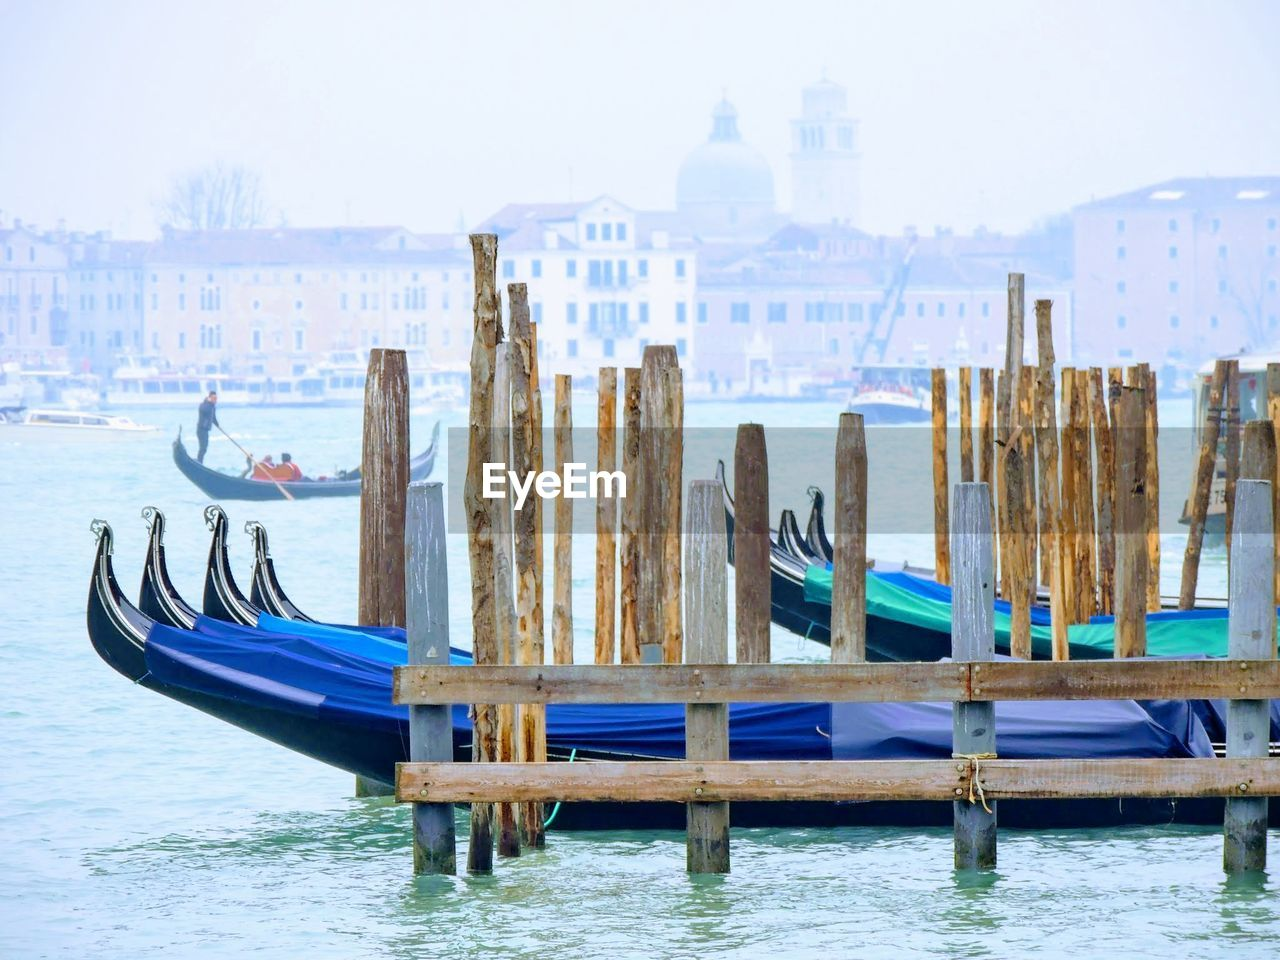 water, built structure, nautical vessel, transportation, no people, wood - material, architecture, wooden post, day, mode of transportation, nature, post, blue, moored, building exterior, sky, focus on foreground, building, waterfront, canal